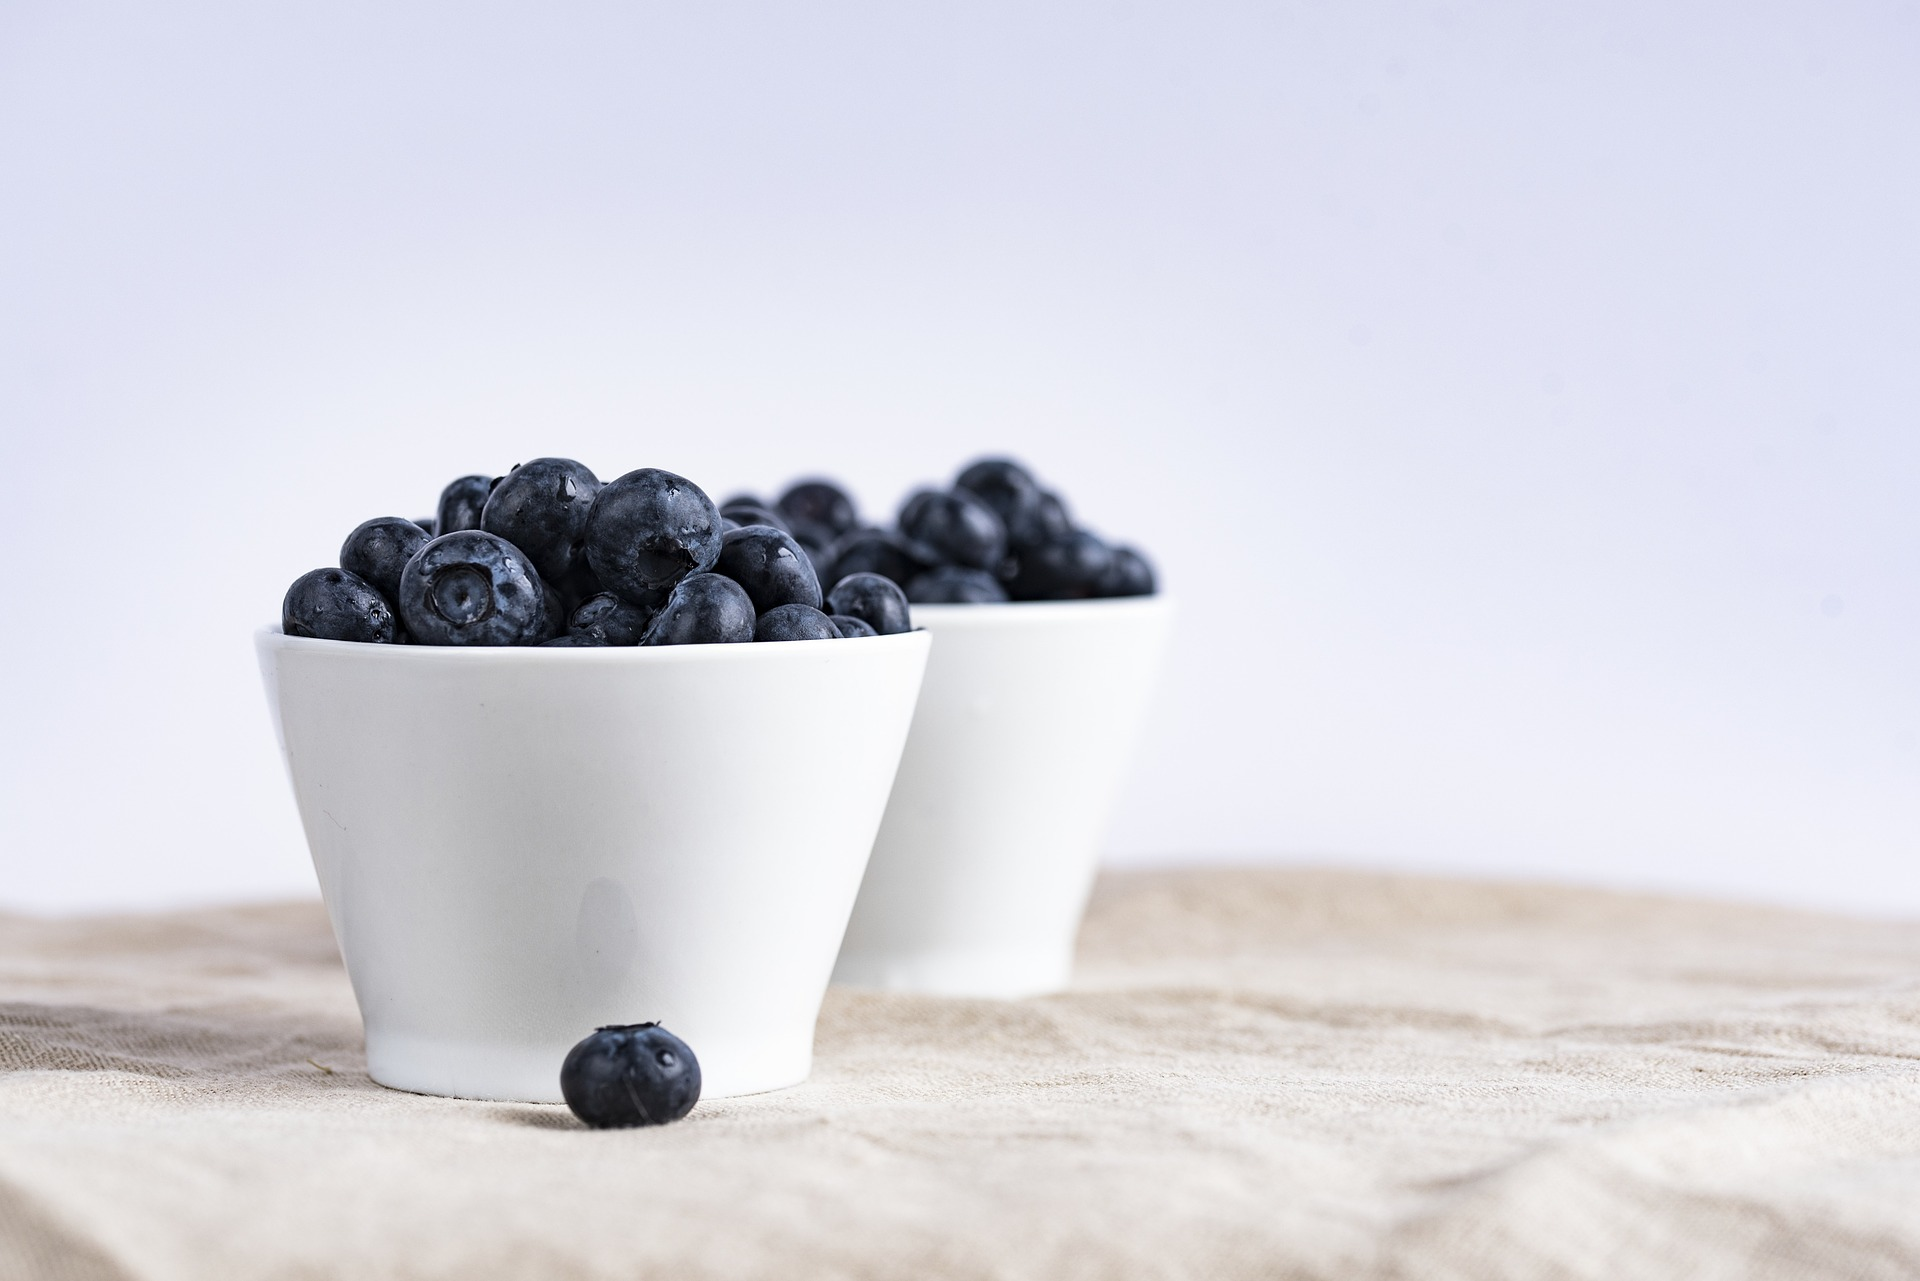 Blueberries in cups